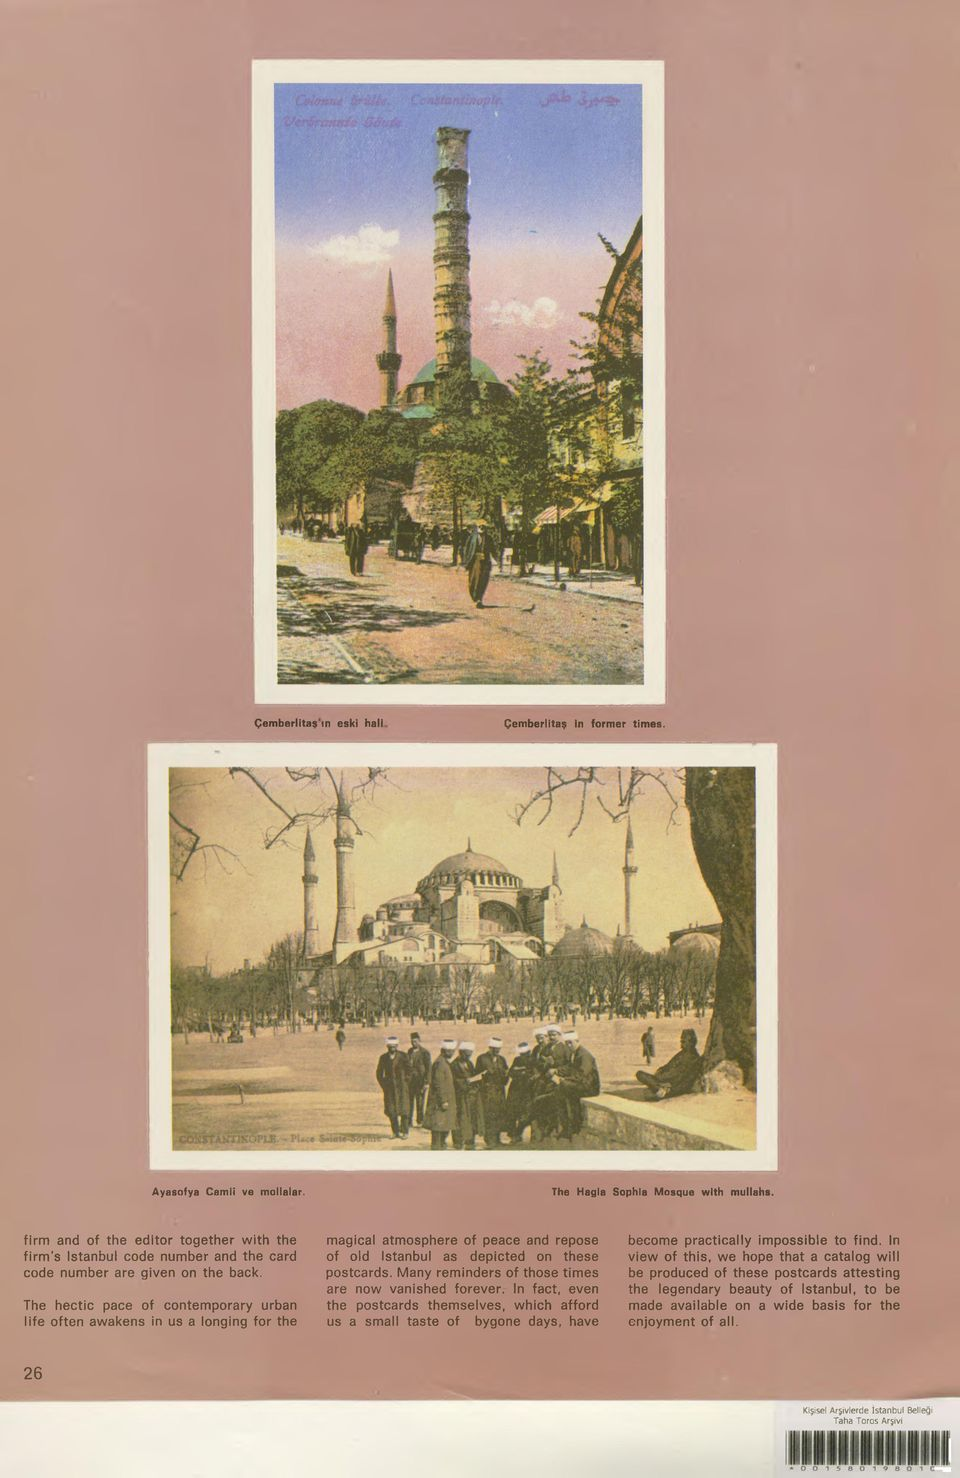 The hectic pace of contemporary urban life often awakens in us a longing for the magical atmosphere of peace and repose of old Istanbul as depicted on these postcards.